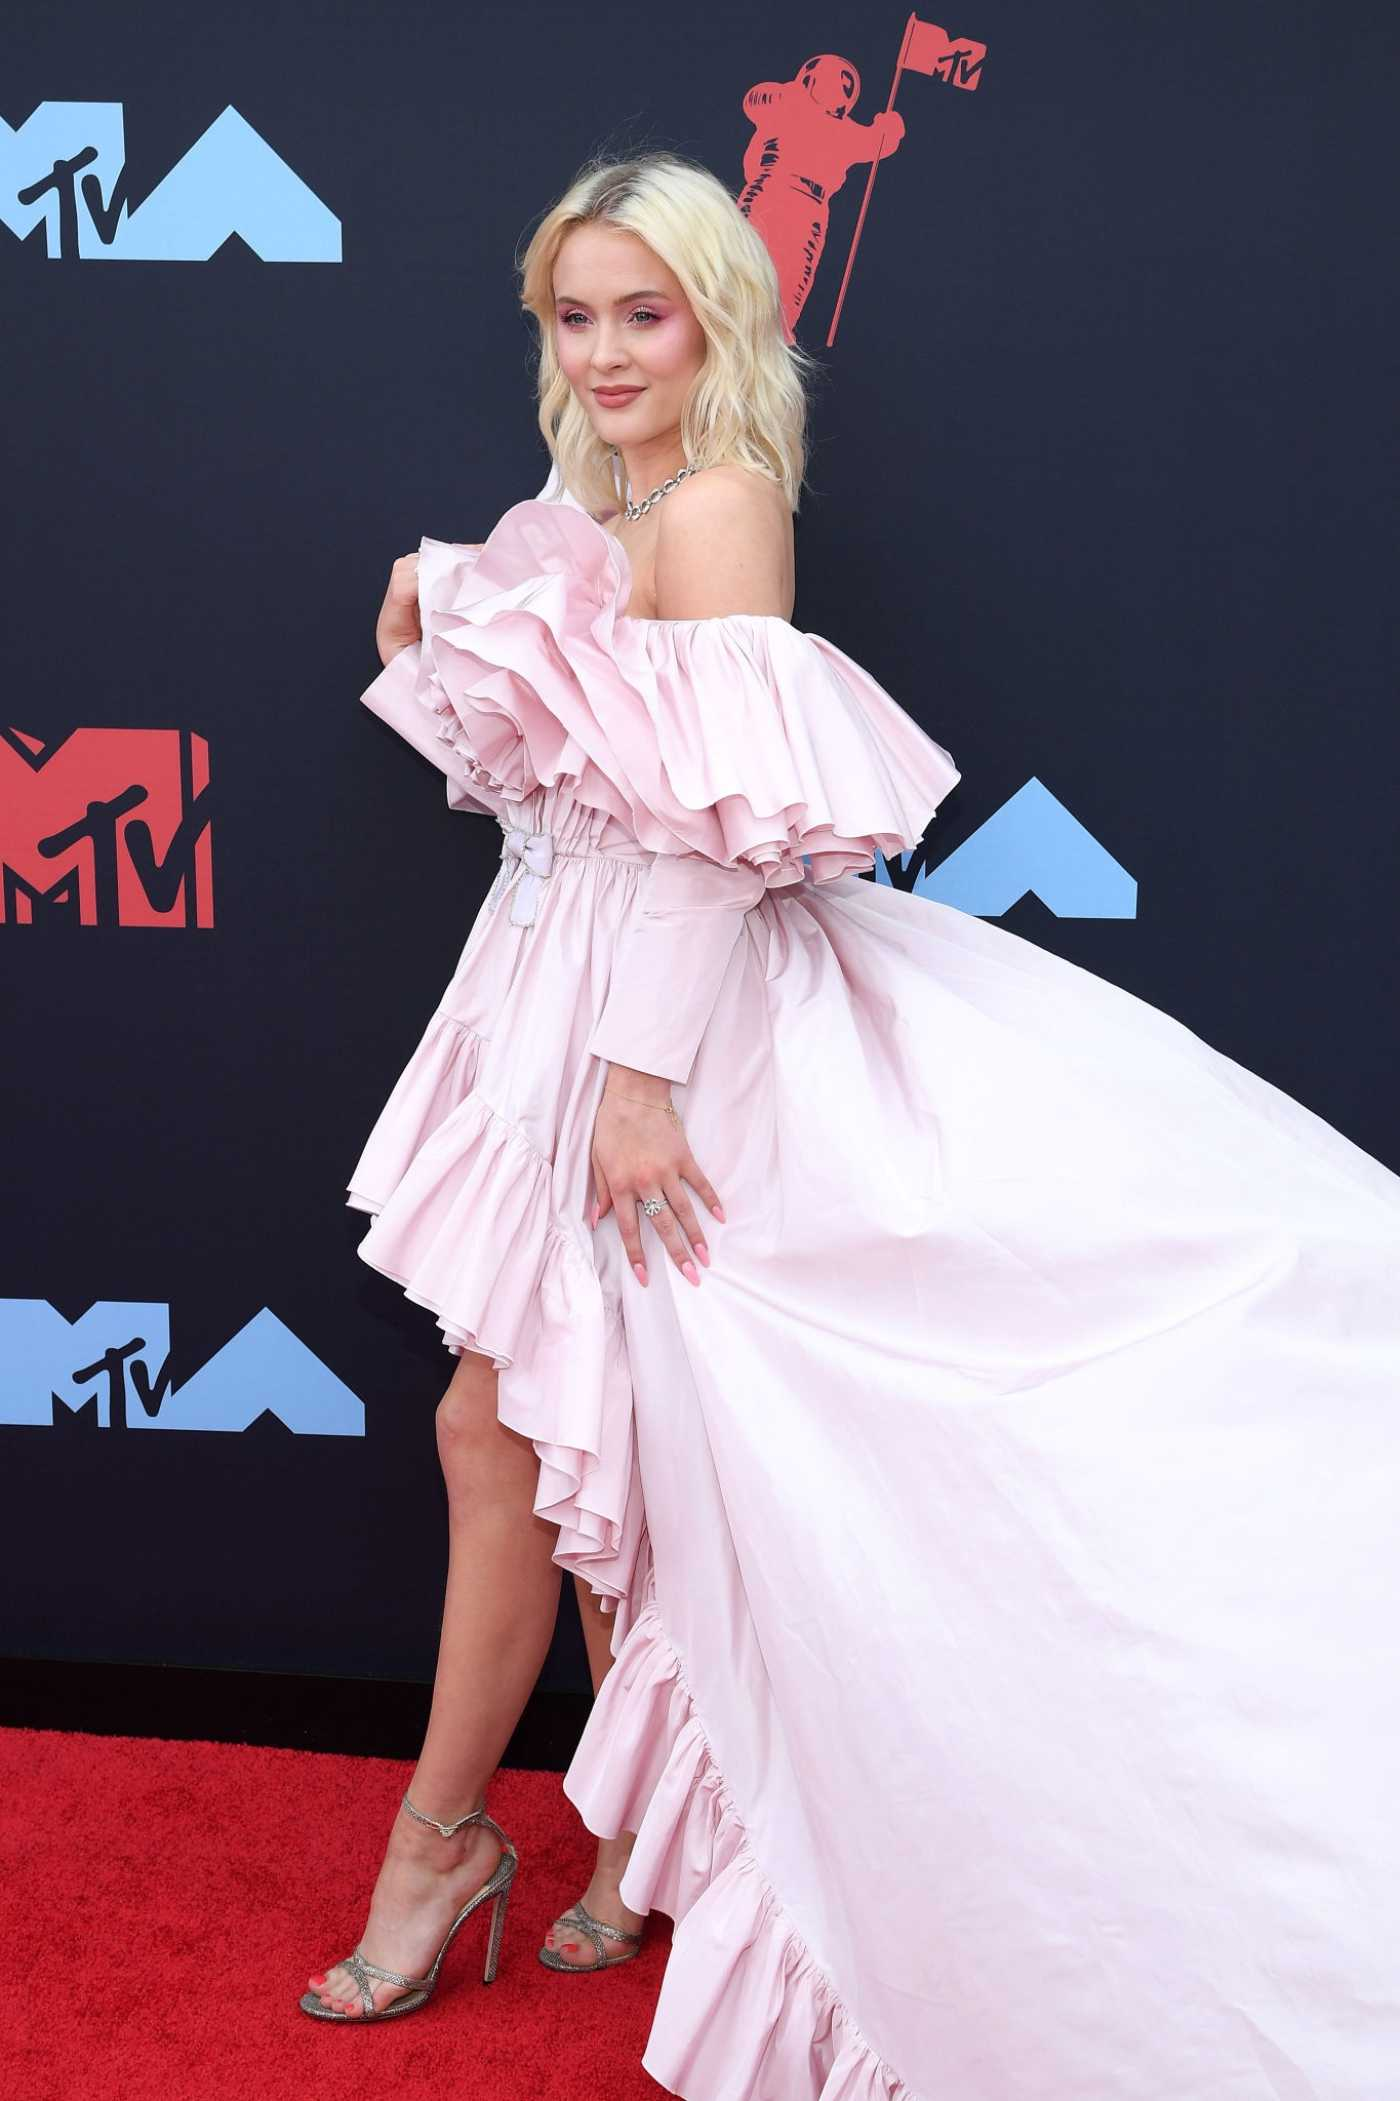 Zara Larsson Attends the 2019 MTV Video Music Awards at Prudential Center in New Jersey 08/26/2019